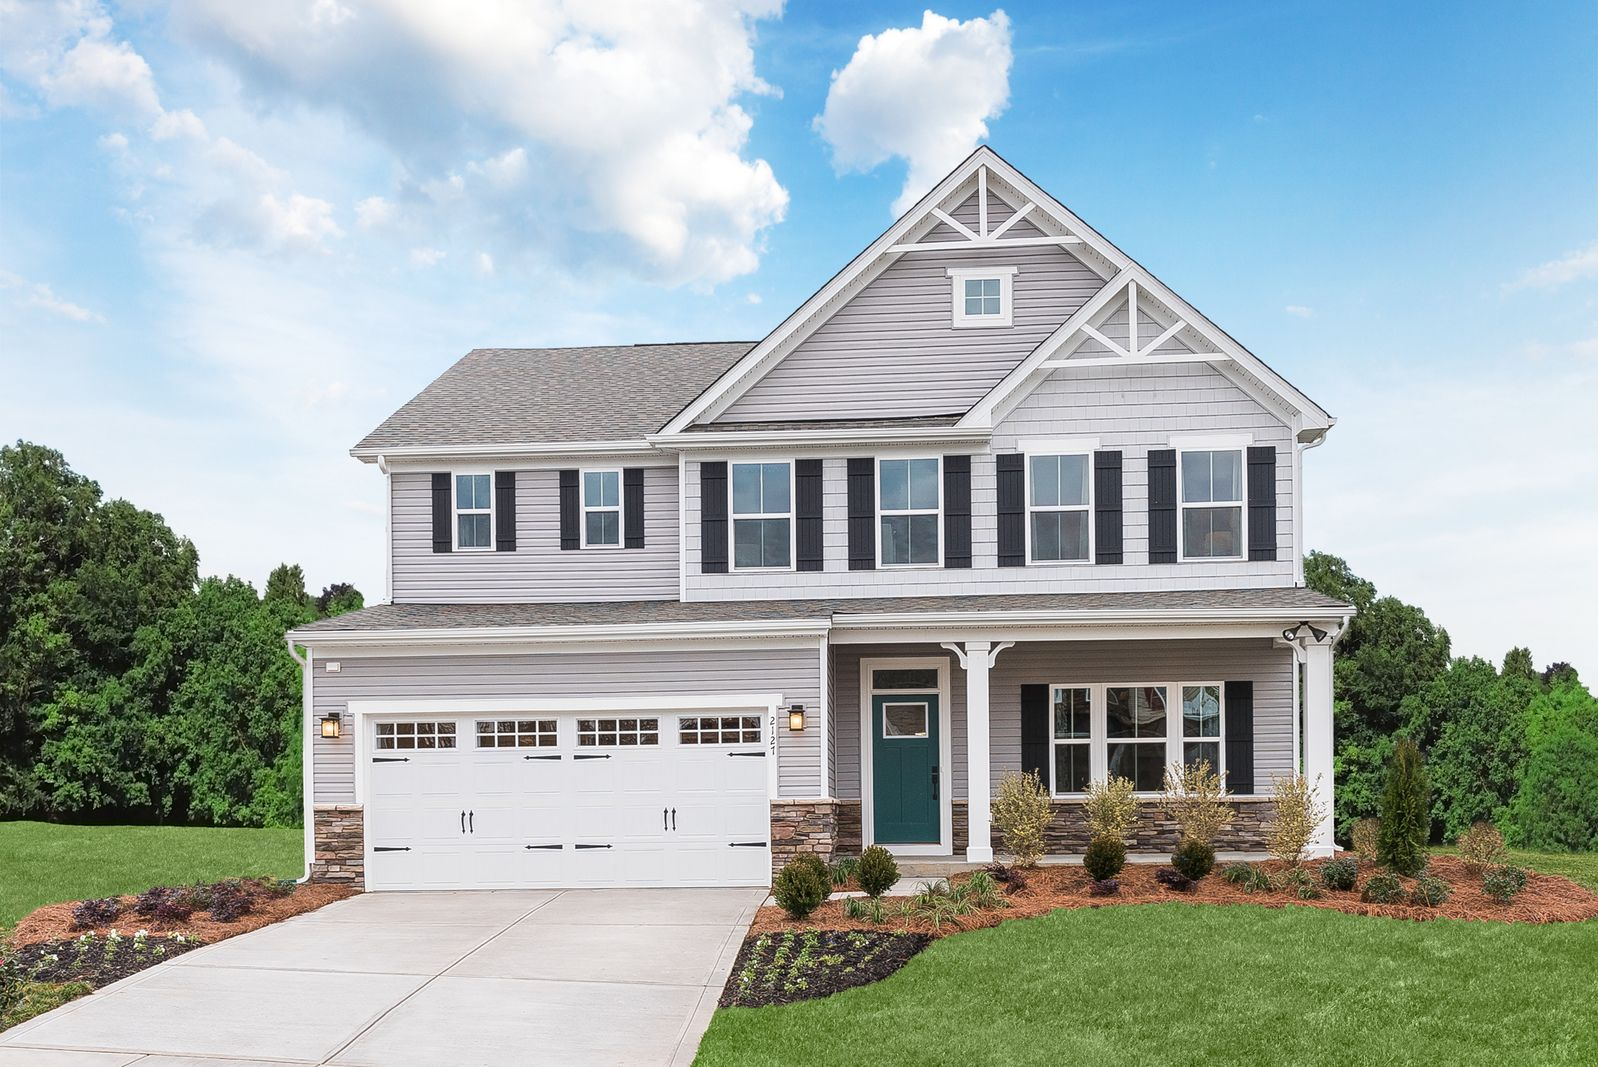 New Homes in Nichols Vale - Mt. Juliet:New phase tucked away in Nichols Vale featuring tree-lined homesites, resort-style amenities, and luxury features included - all for an amazing value.Schedule your virtual or in-person visit today!